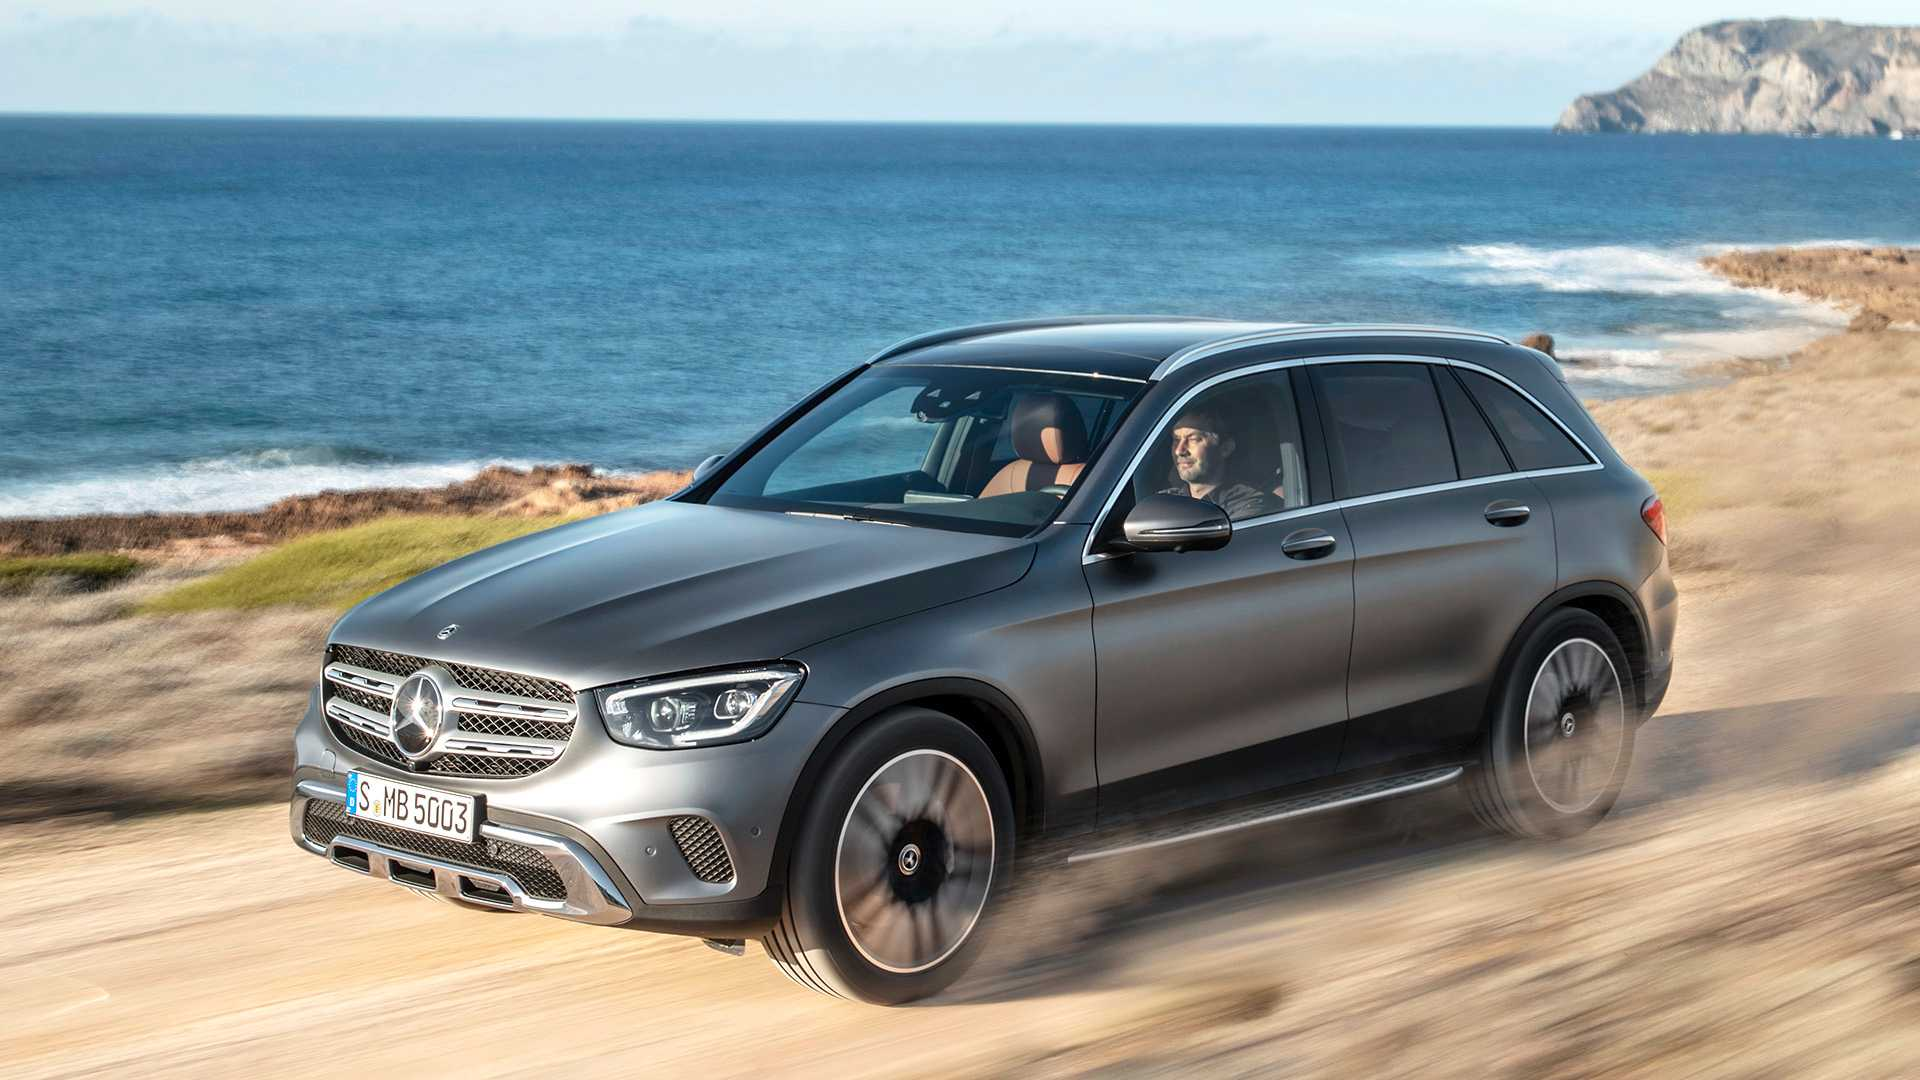 mercedes-benz-glc-2019 (1).jpg